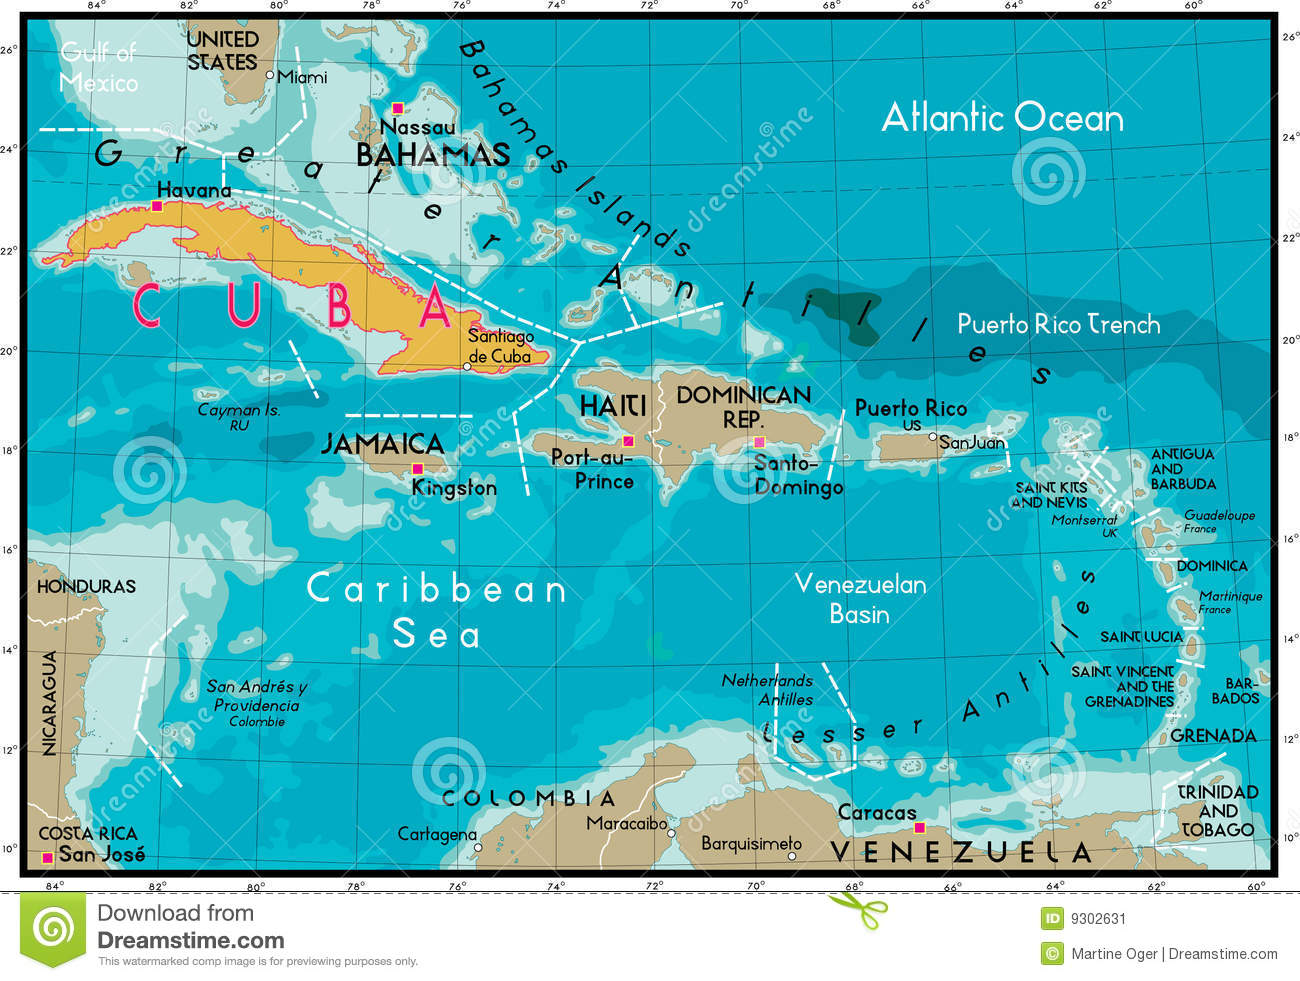 political map of cuba with Stock Image Cuba Caribbean Sea Image9302631 on Angolan civil war in addition Inter also Map2 moreover Switzerland also Uncle Sam Looks On While Half World.